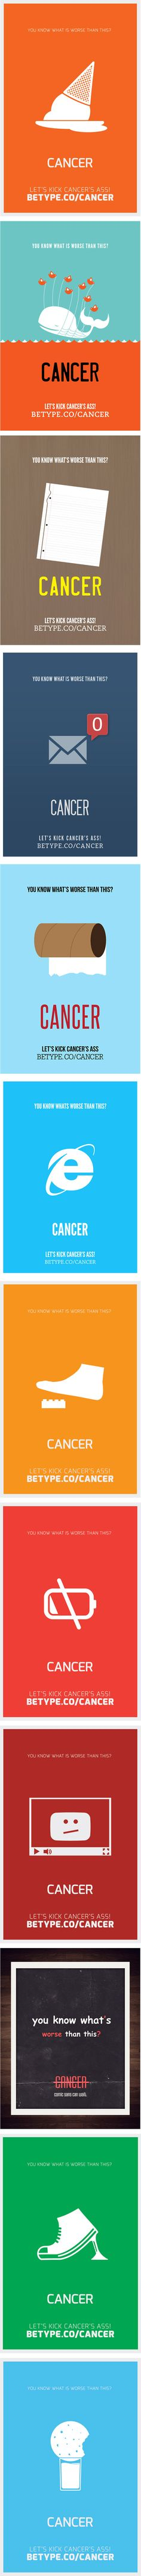 Let's Kick Cancer's Ass Posters | #poster #cancer